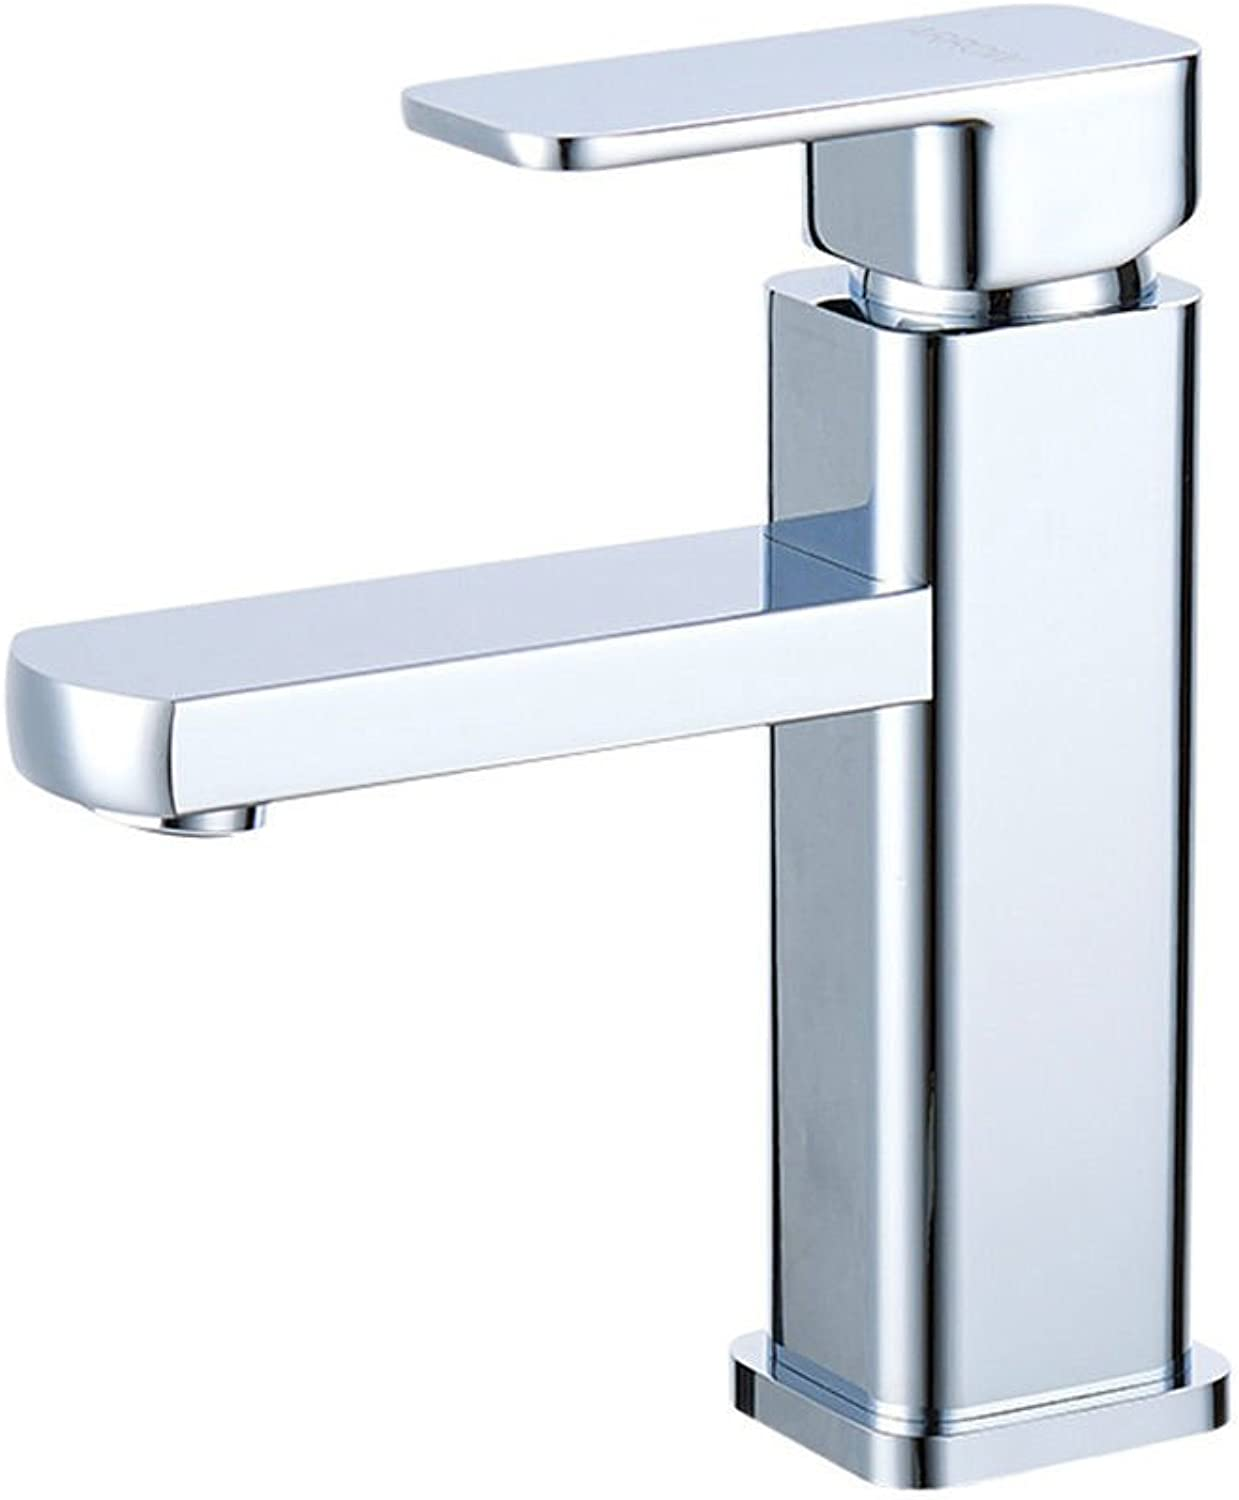 Lalaky Taps Faucet Kitchen Mixer Sink Waterfall Bathroom Mixer Basin Mixer Tap for Kitchen Bathroom and Washroom Column Single Hole Hot and Cold Single Copper Short Square